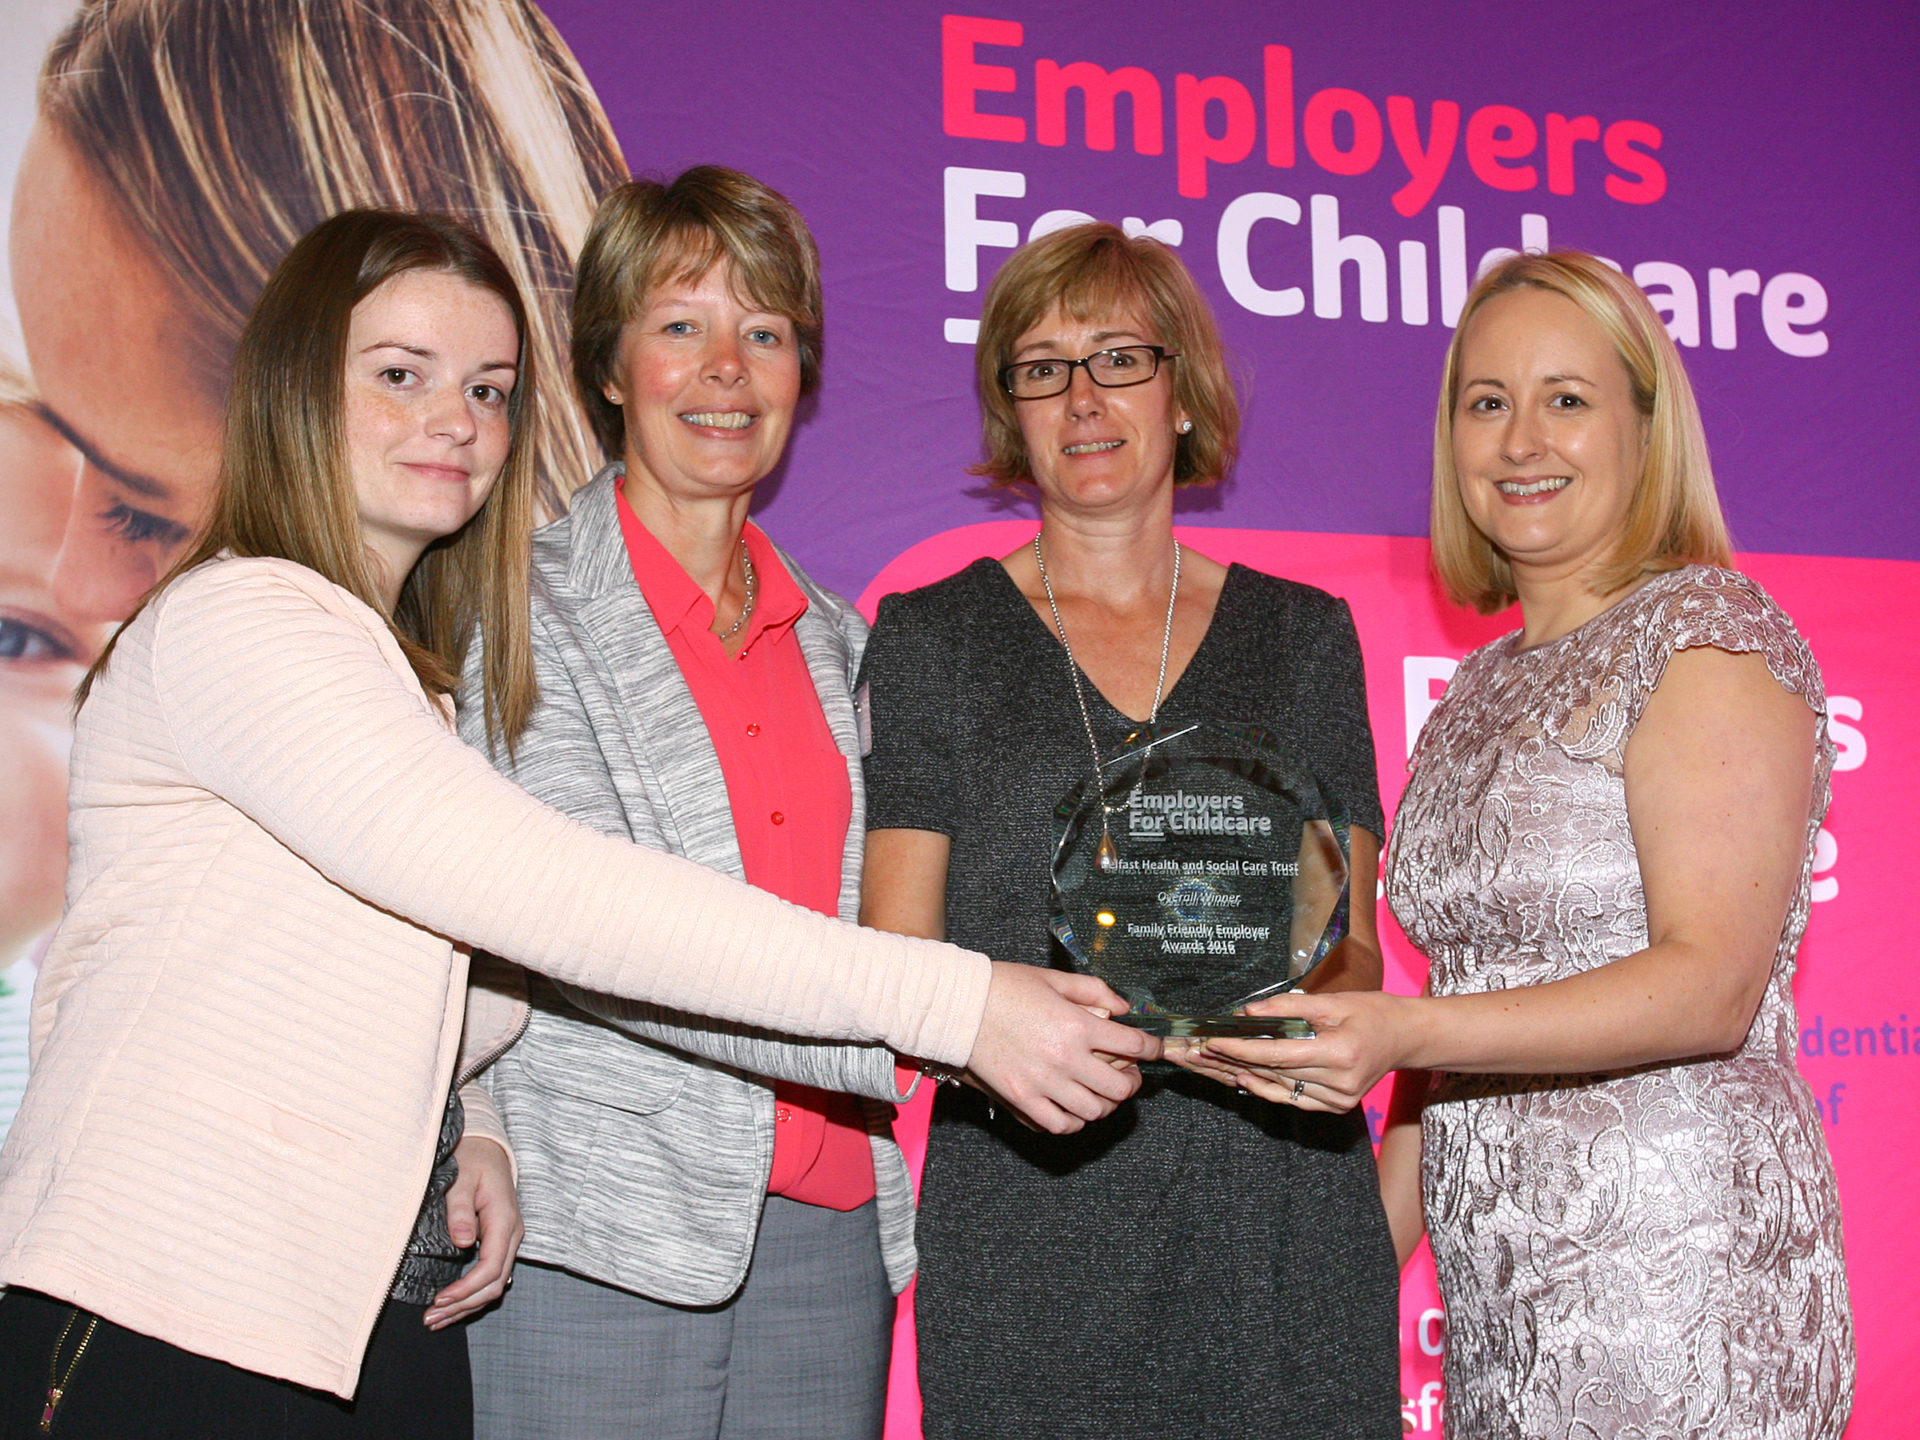 Belfast Trust is Northern Ireland's Most Family Friendly Employer